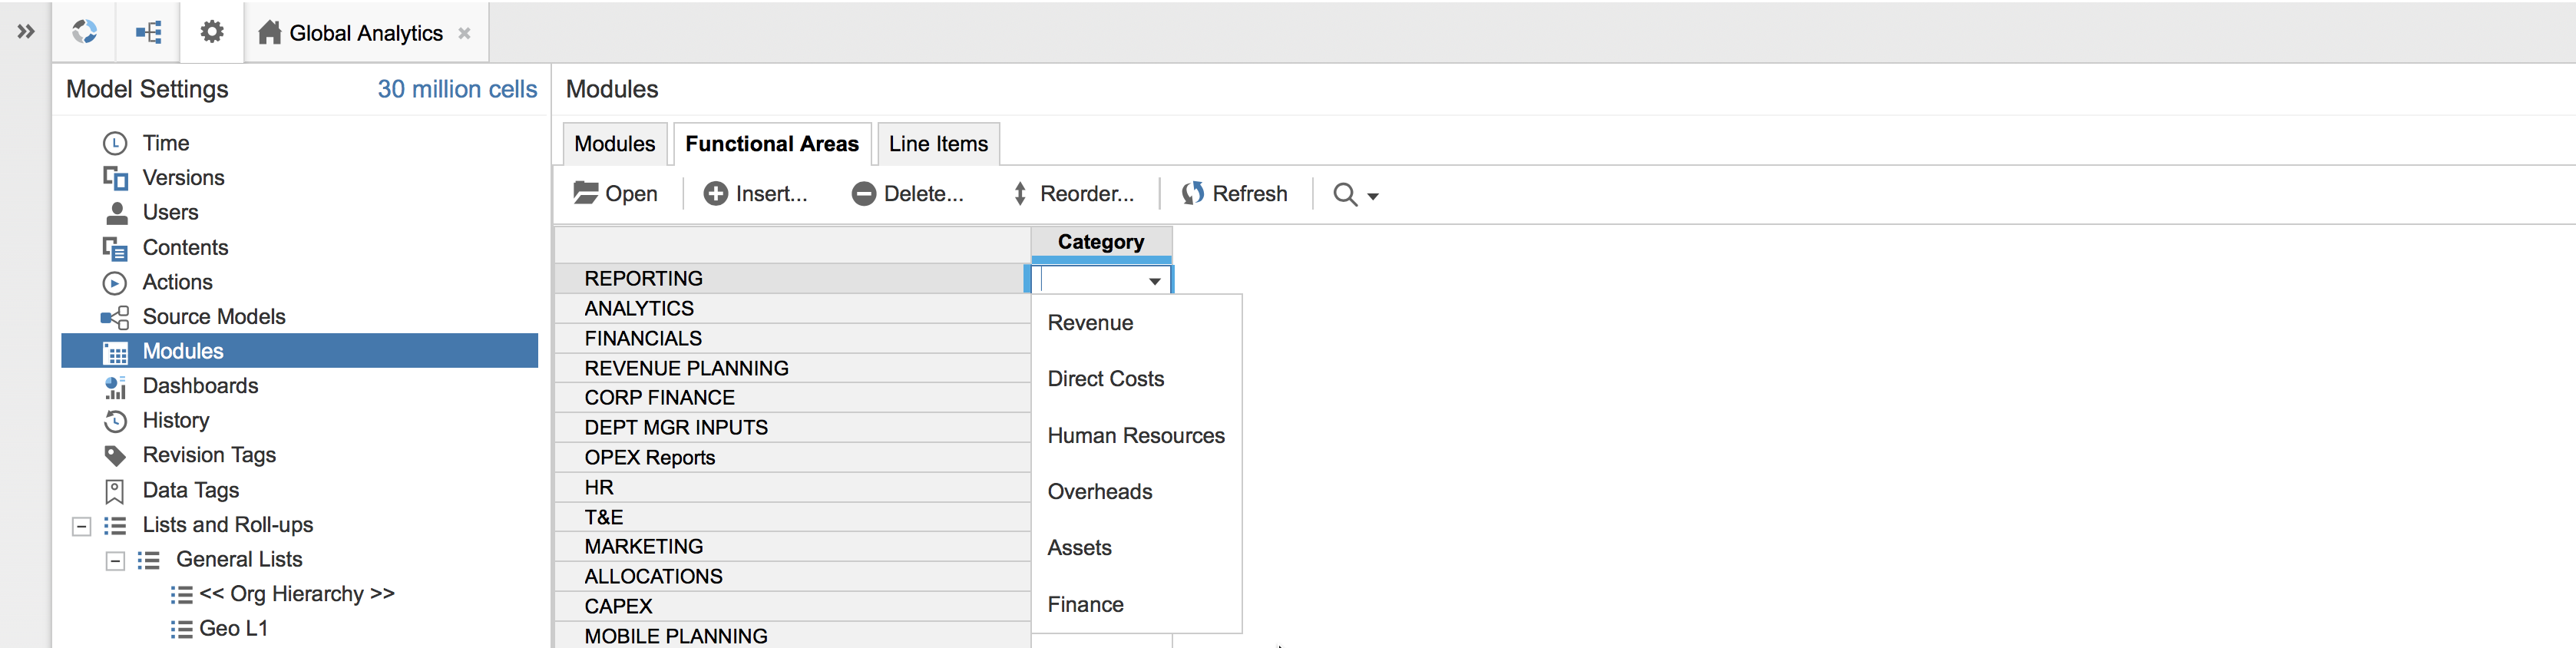 An Anaplan model with Modules selected in Model Settings, and Functional Areas selected within Modules. The Category field is selected for one of the functional areas, so that the Category dropdown displays.